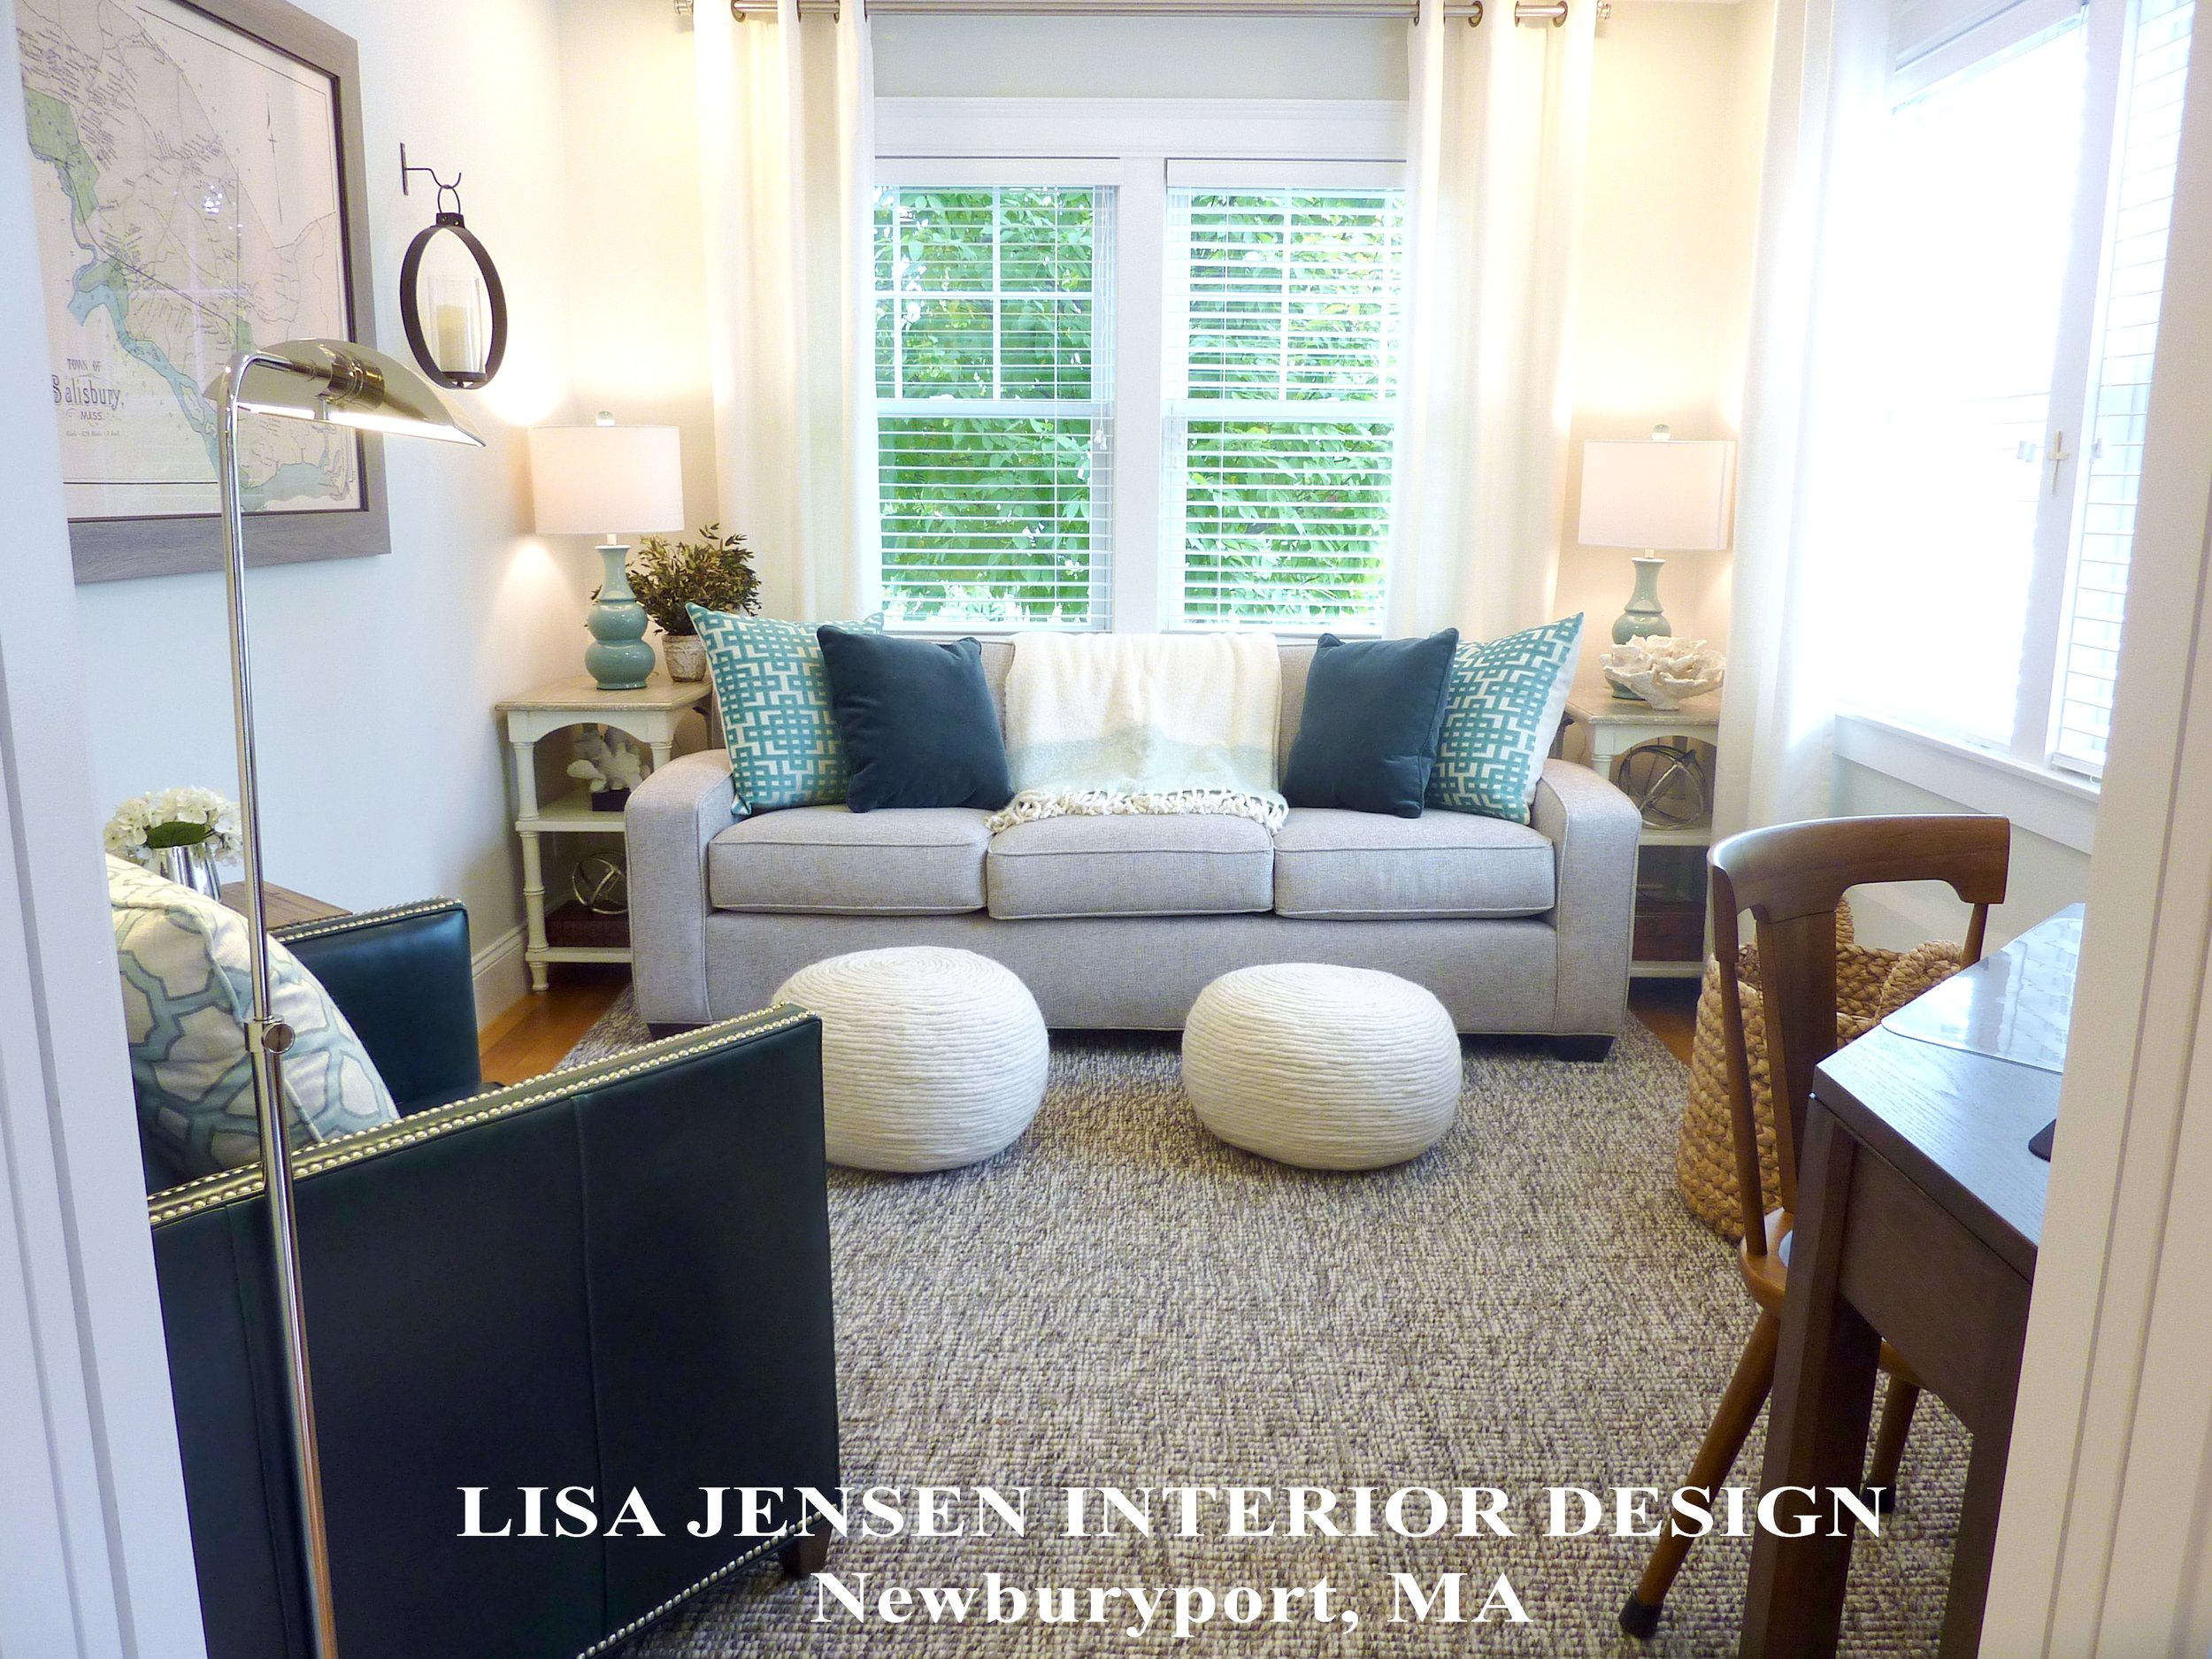 After photograph of the new small Den Design and Decoration Lisa Jensen Interior Design created for her clients in their Salisbury MA waterfront home. The designer successfully incorporated all of the clients wishes to have a desktop work station, a sofa large enough to lay down on, a reading chair, and to make it comfortable for both adults and grandchildren.